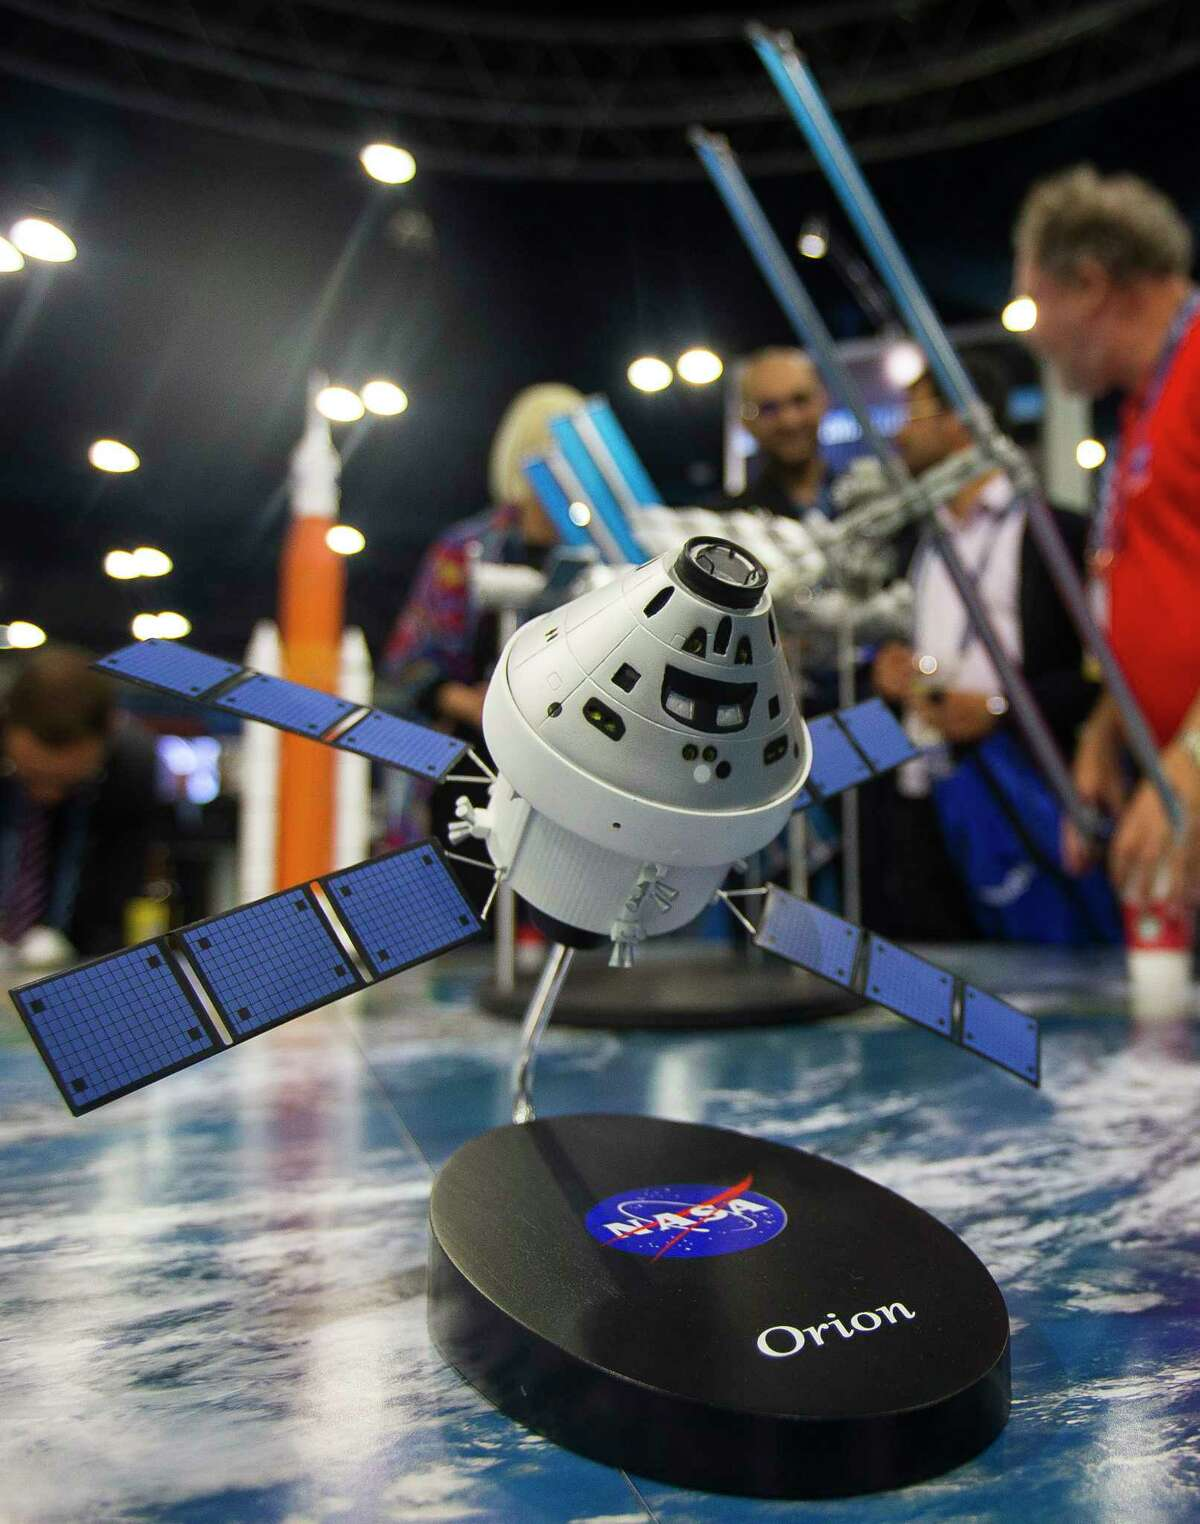 A model of the Orion capsule was among the sights at the SpaceCom conference last week at the George R. Brown center.